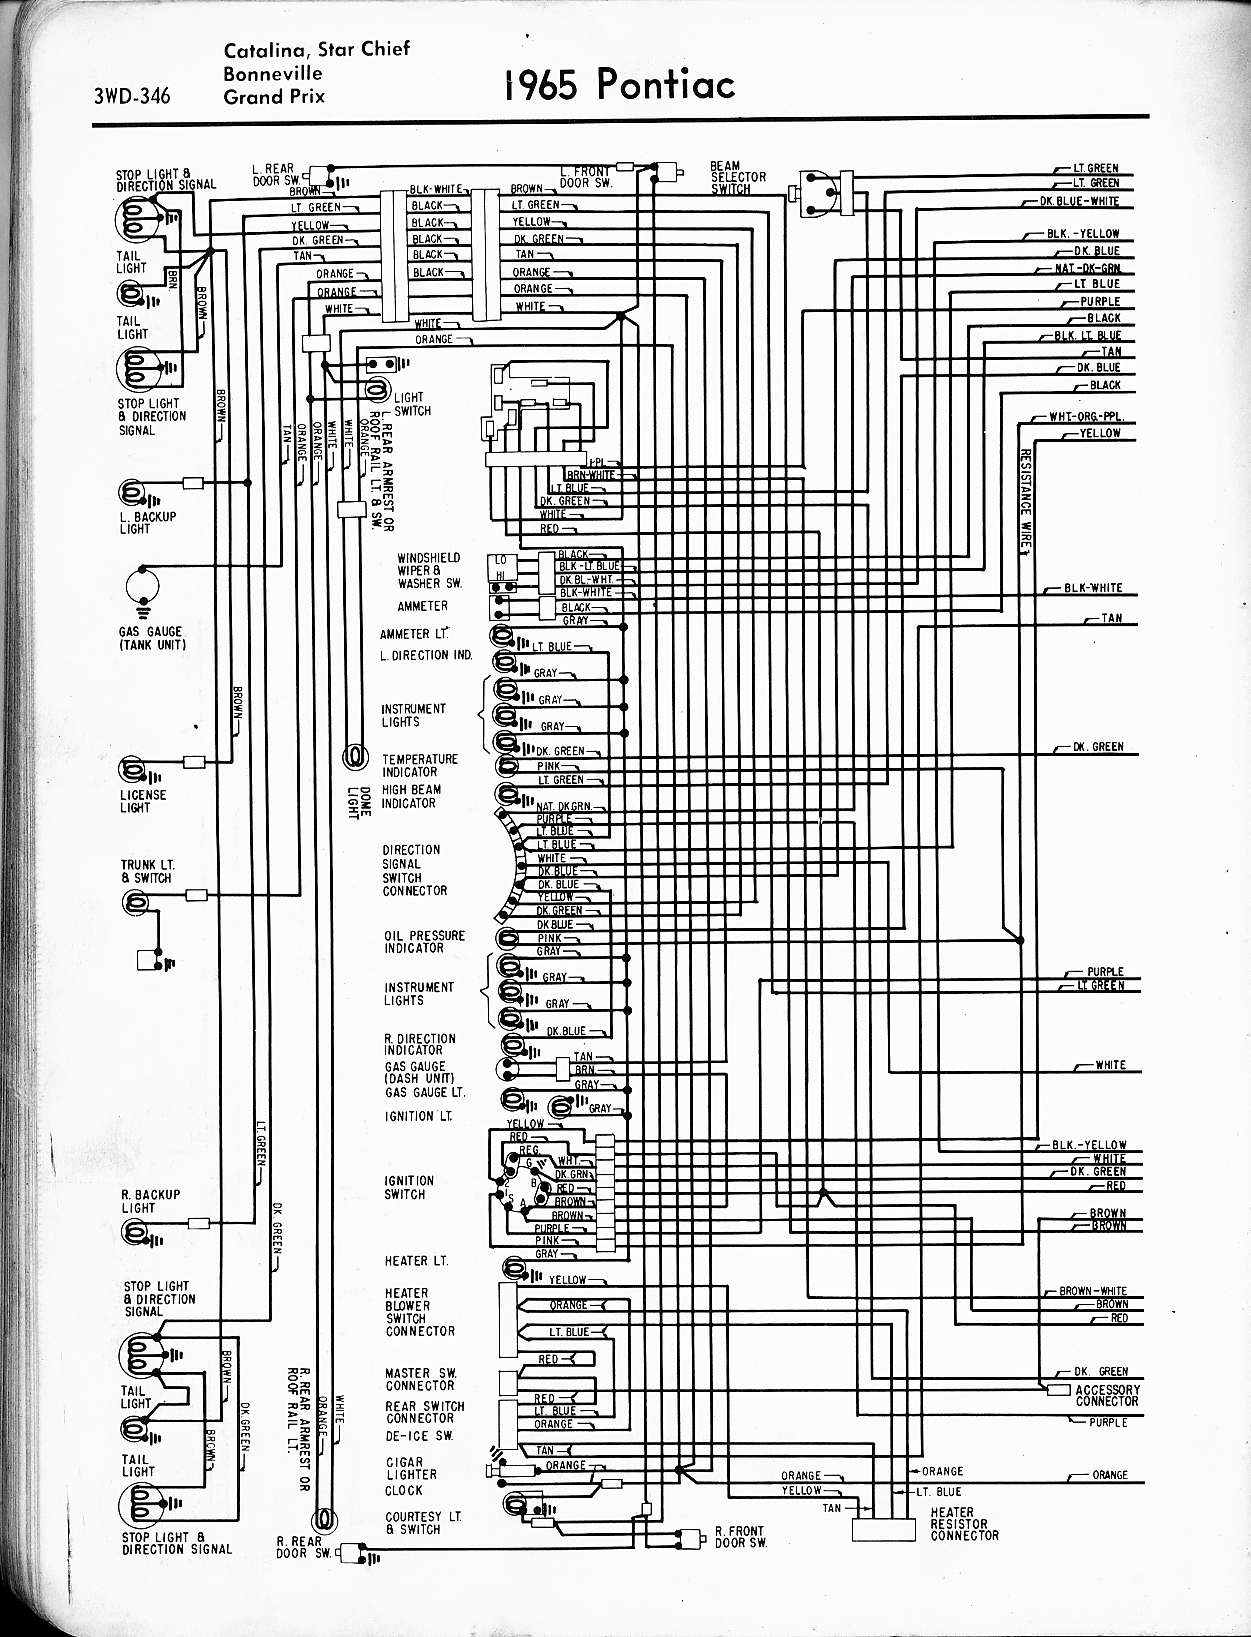 1969 Pontiac Wiring Diagram Opinions About Furthermore 1962 Ford Thunderbird On Gto Detailed Schematics Rh Mrskindsclass Com 1954